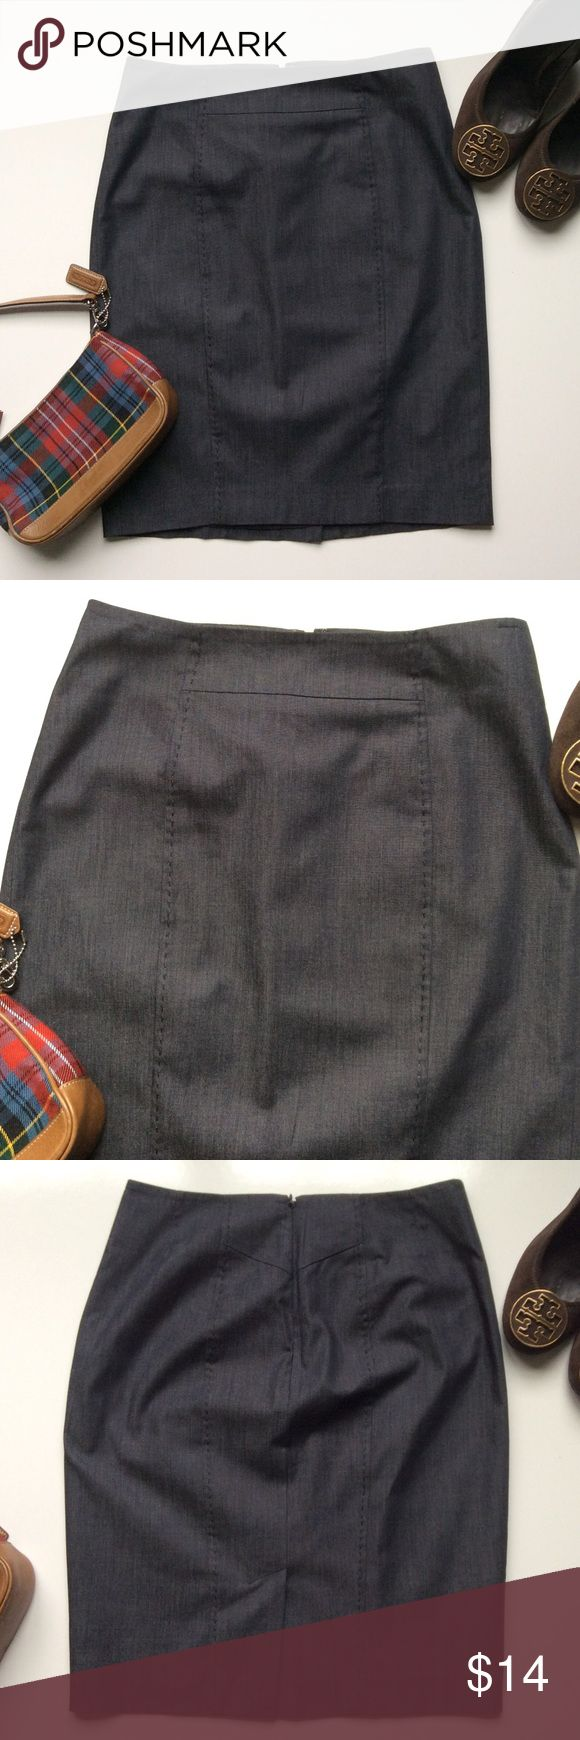 Sale!! Classic skirt! Size 0P stretchy skirt with great stitching detail!  Dark blue, almost has a denim look, but fancier! LOFT Skirts